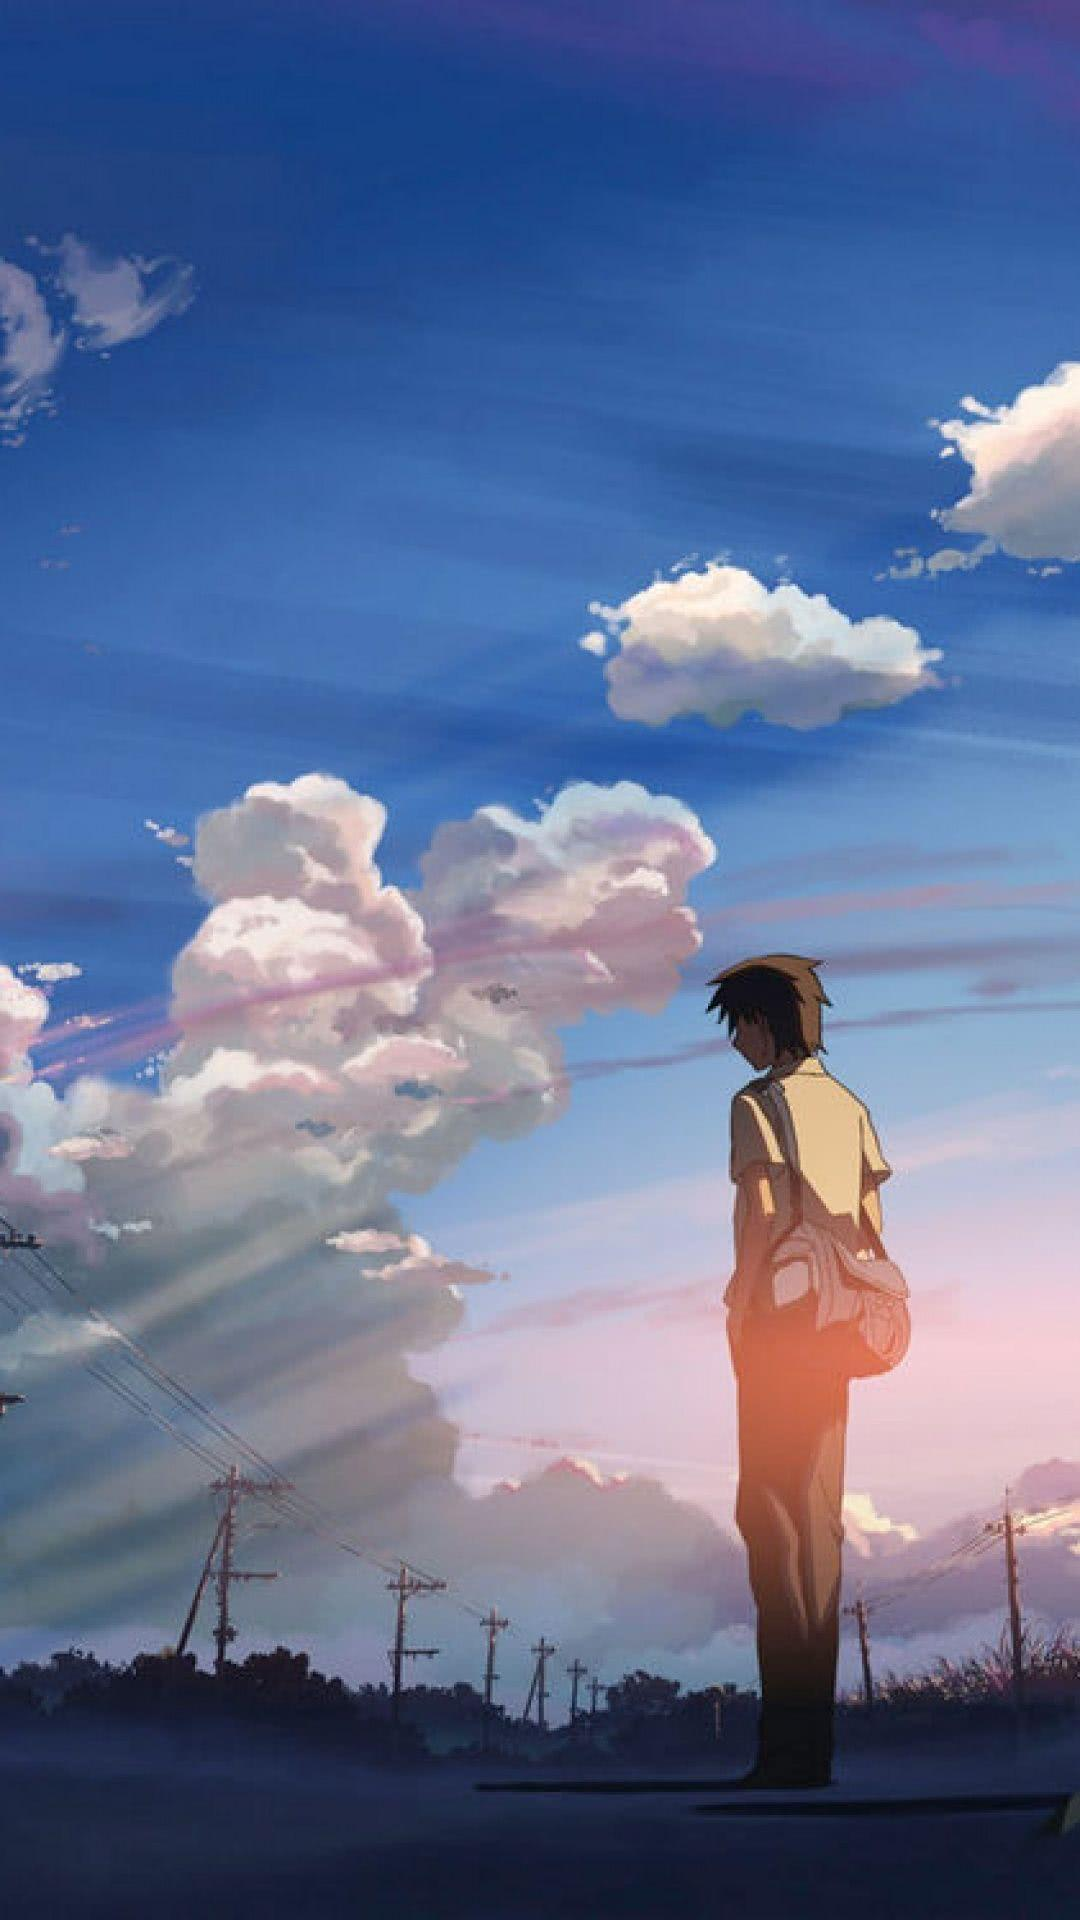 Anime 5 Centimeters Per Second Iphone Wallpapers